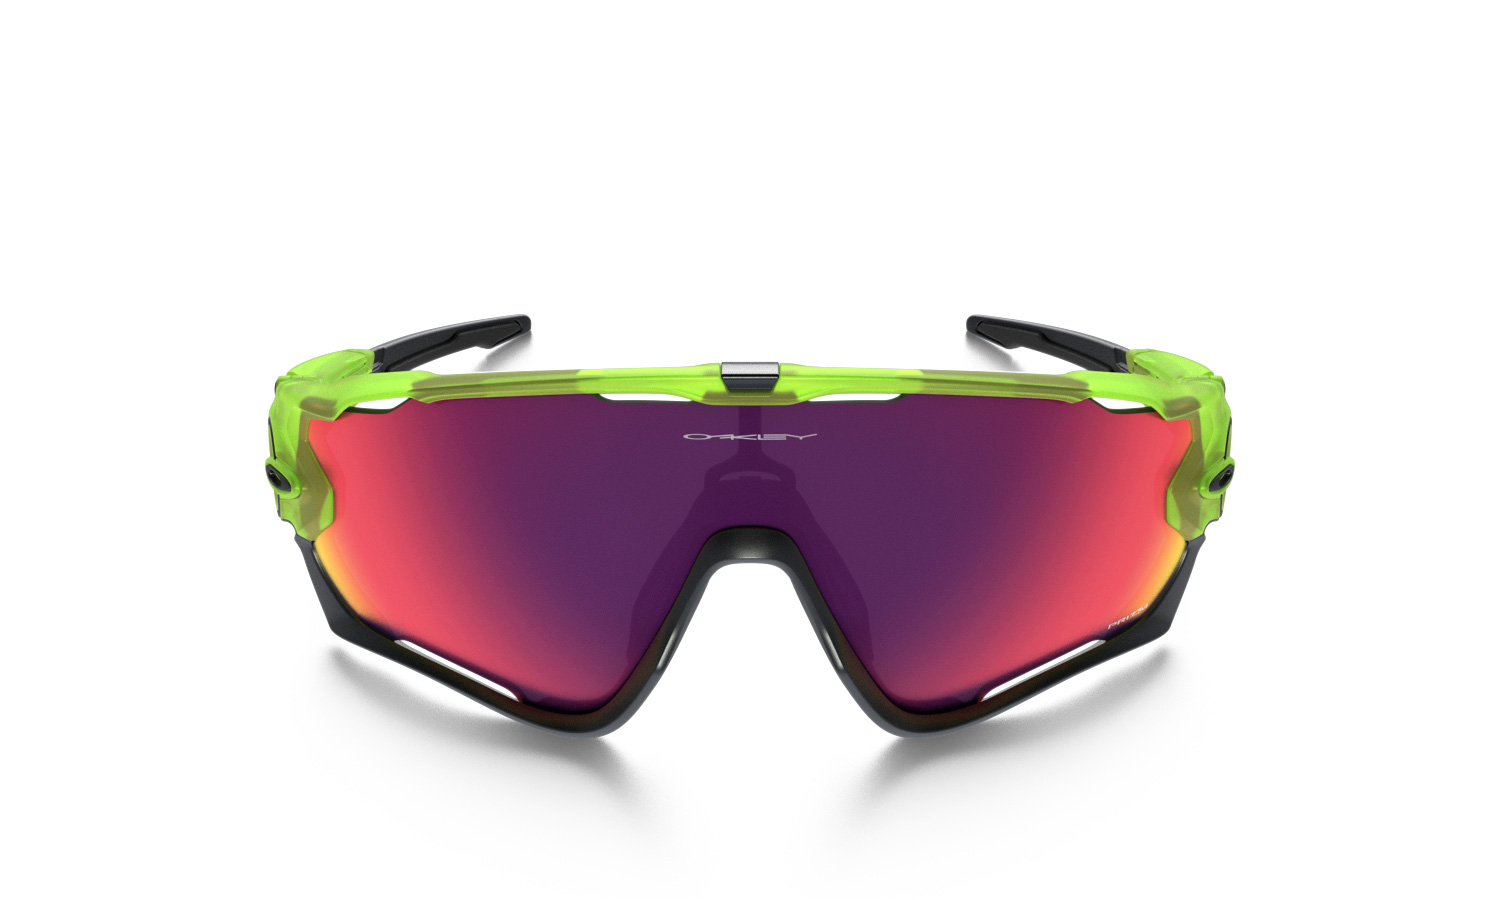 3456a02b44 Oakley - Men's & Women's Sunglasses, Goggles, & Apparel